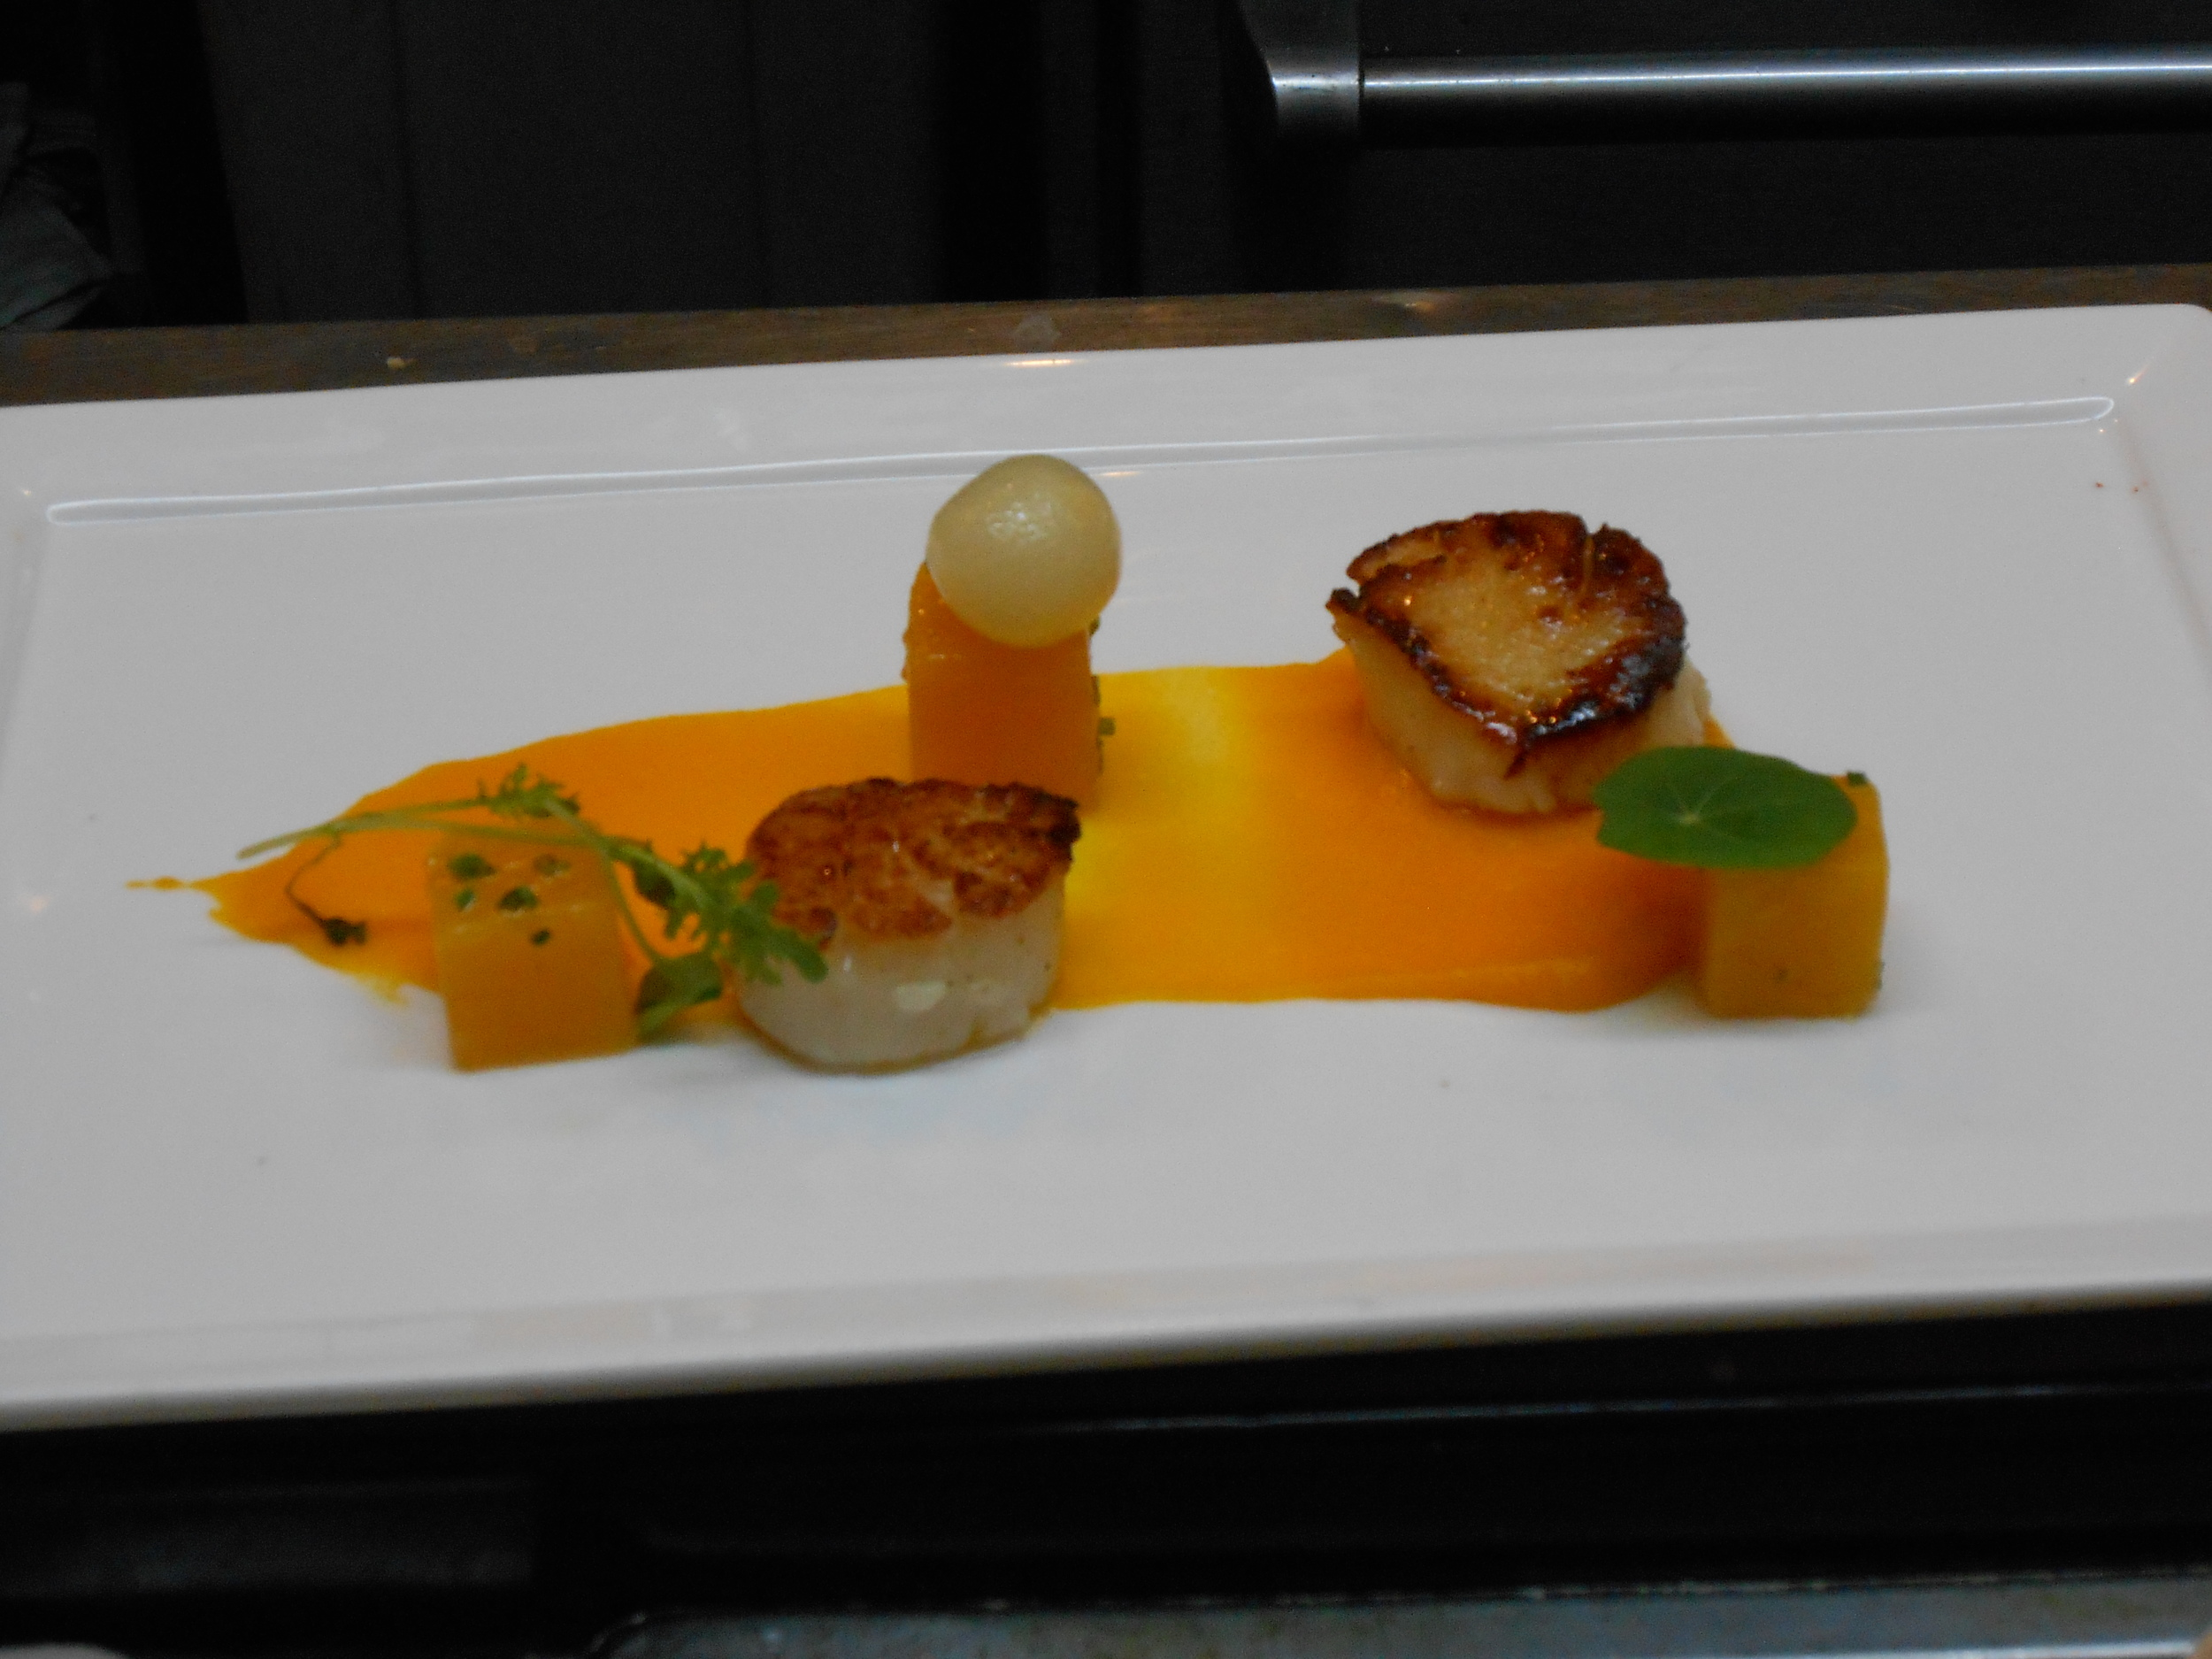 Second course: Scallops with butternut squash, curry, and coconut